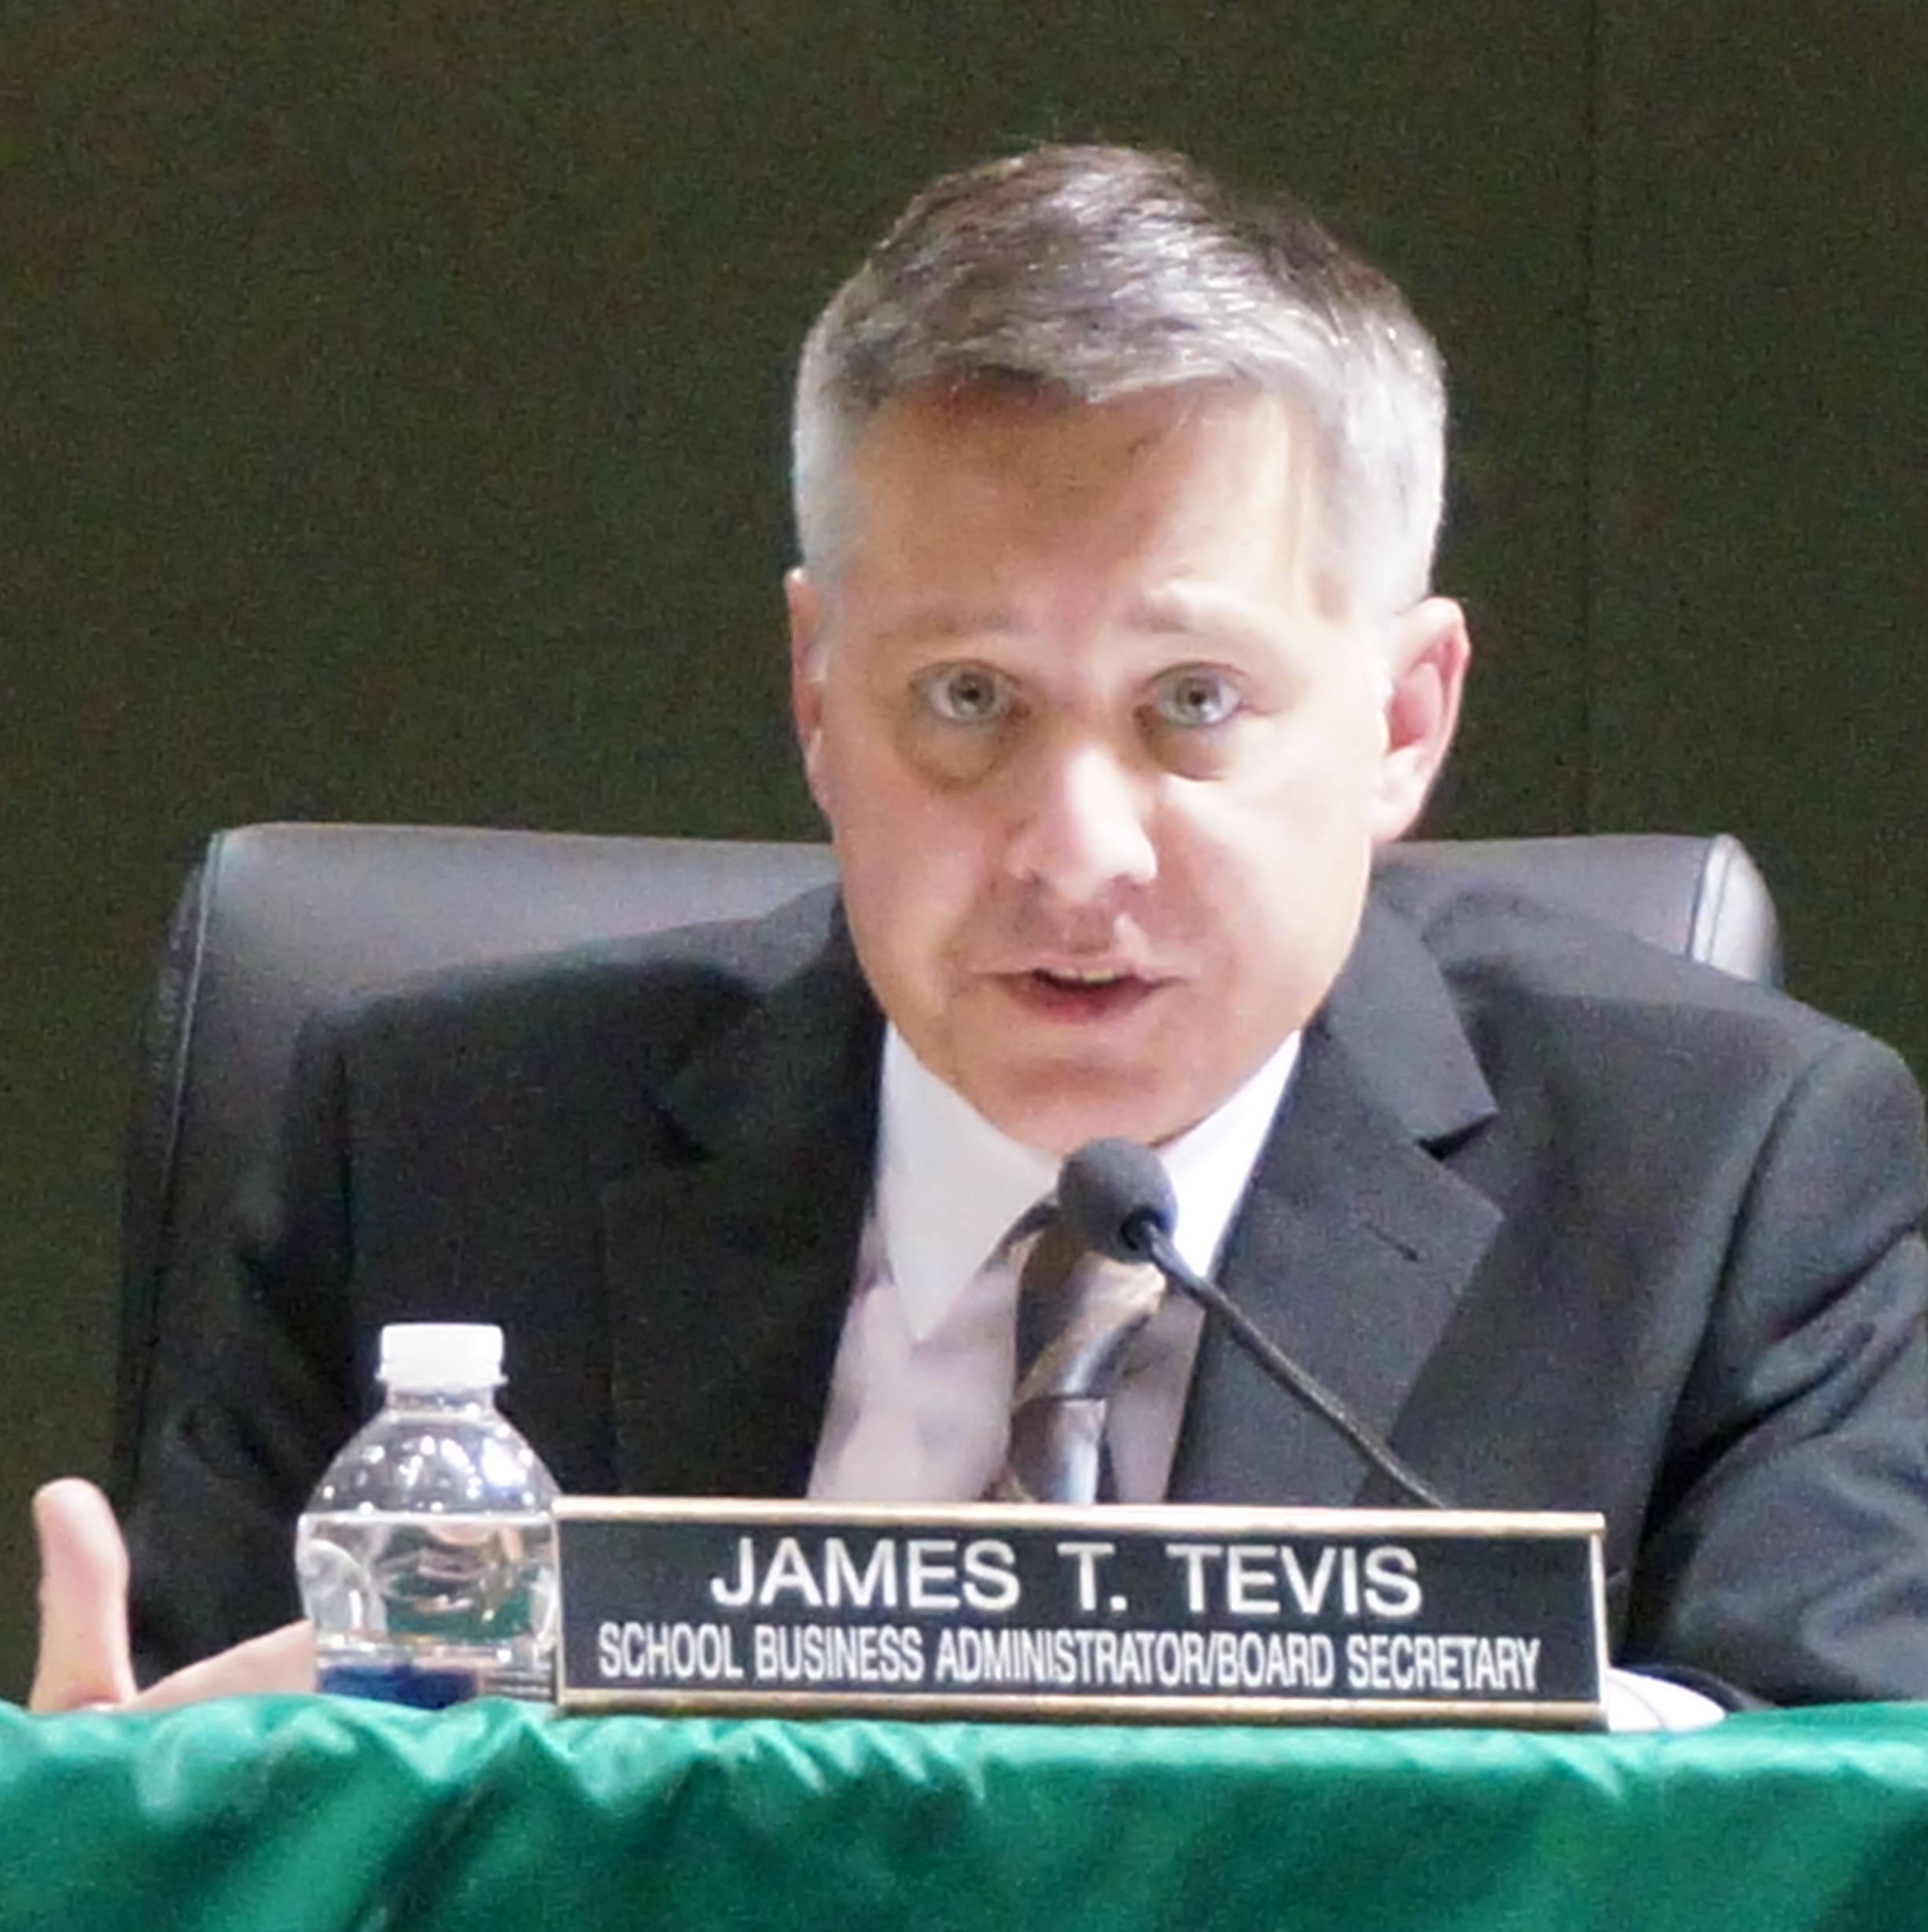 76a542f489d7fb67aacd_a_District_Administrator_Jim_Tevis.JPG